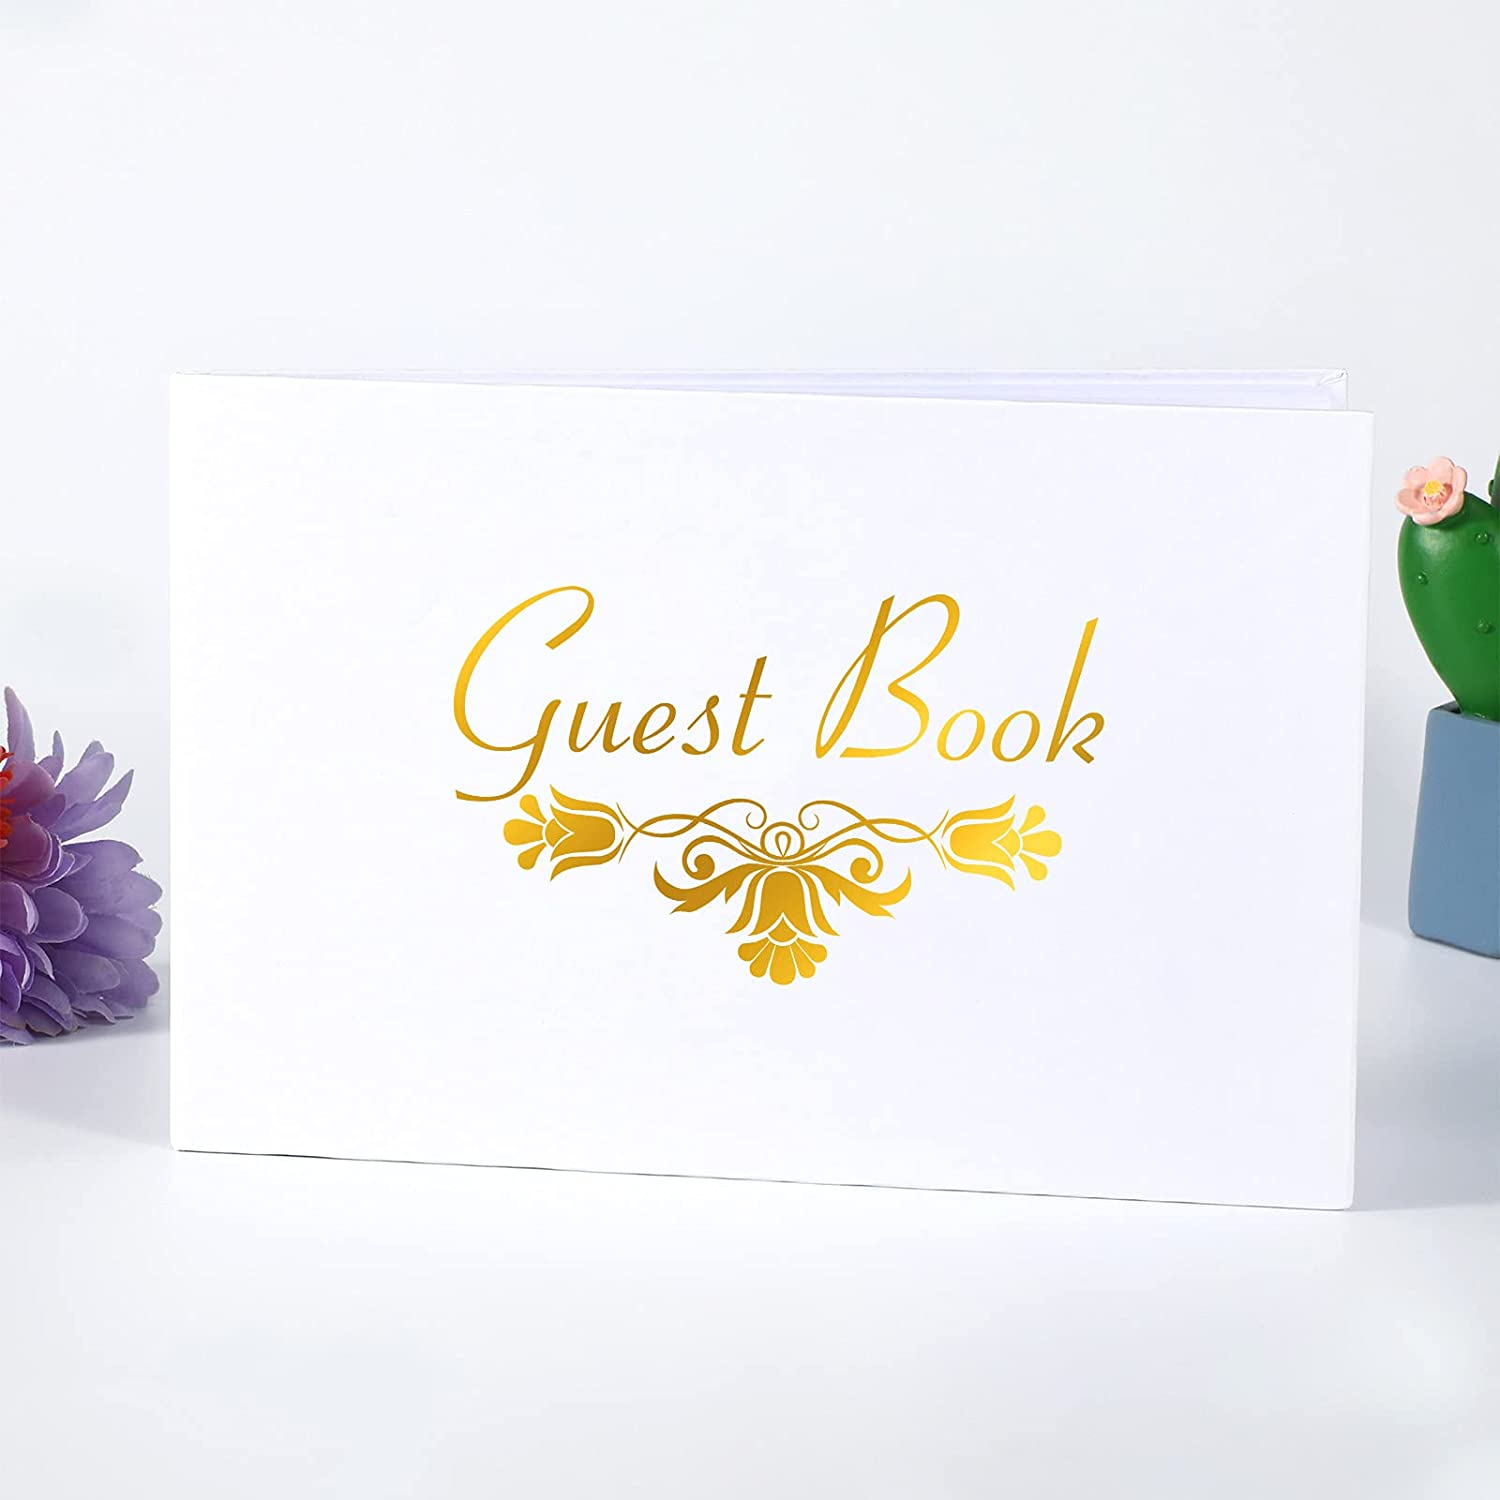 Outus Wedding Guest Book White Detroit Mall Hardbound 6 Gues x inch Limited time cheap sale Book9